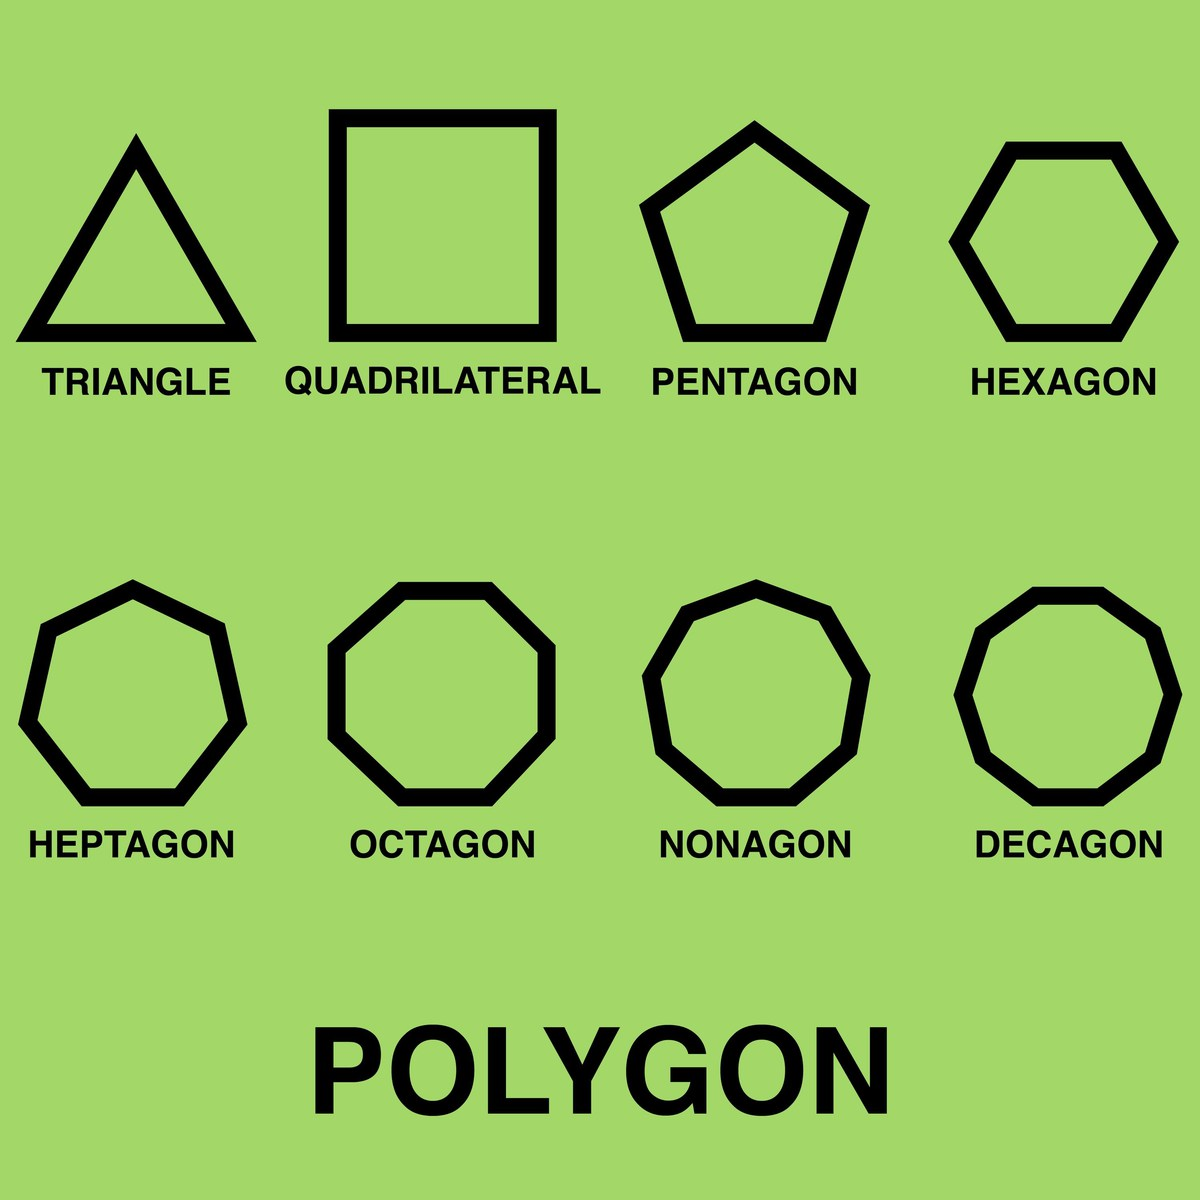 Name All Polygons Shapes